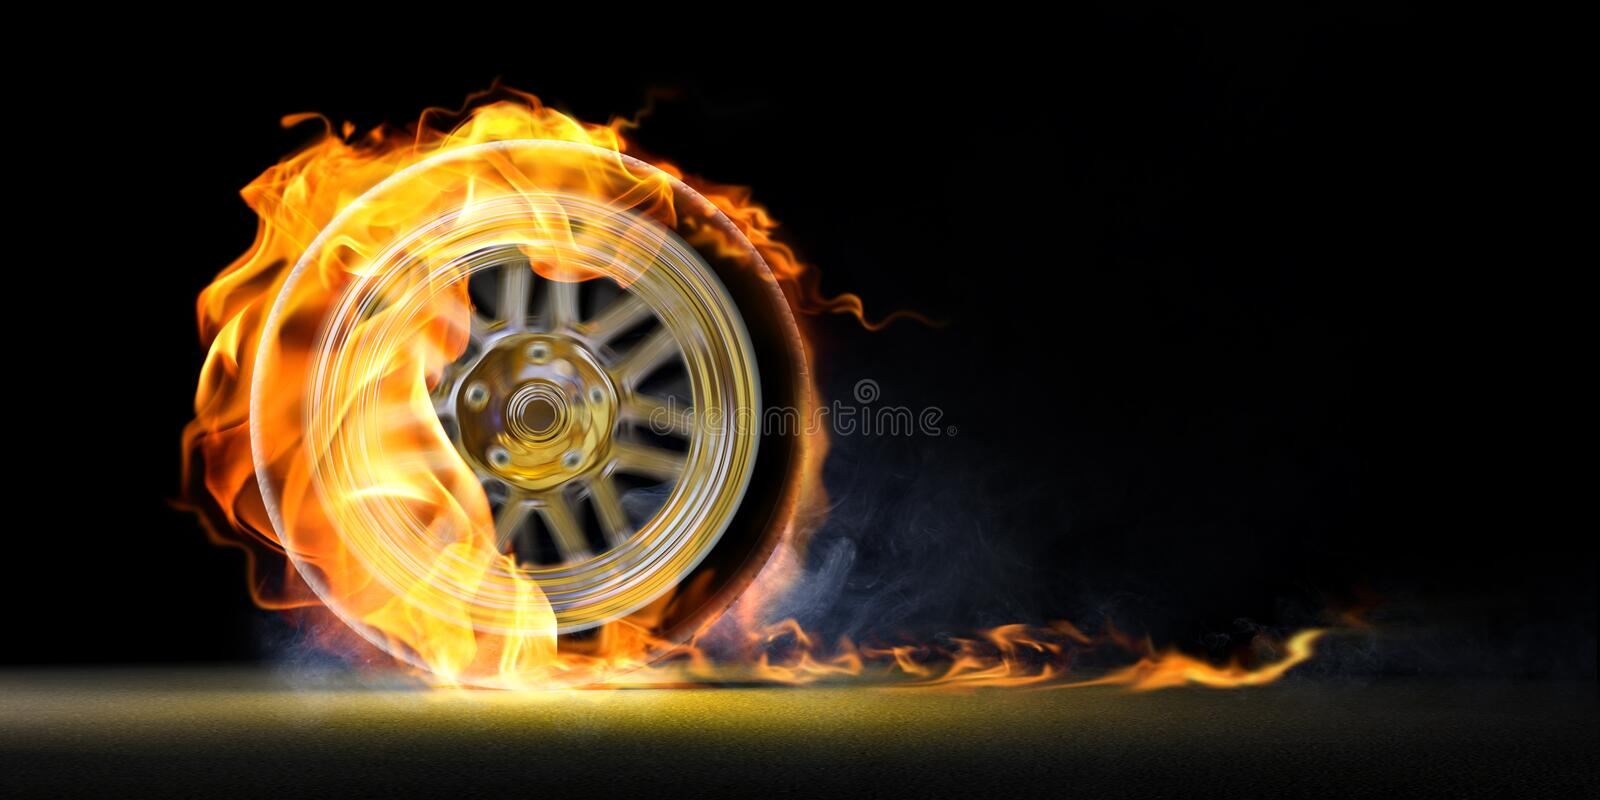 Car wheel on fire royalty free illustration